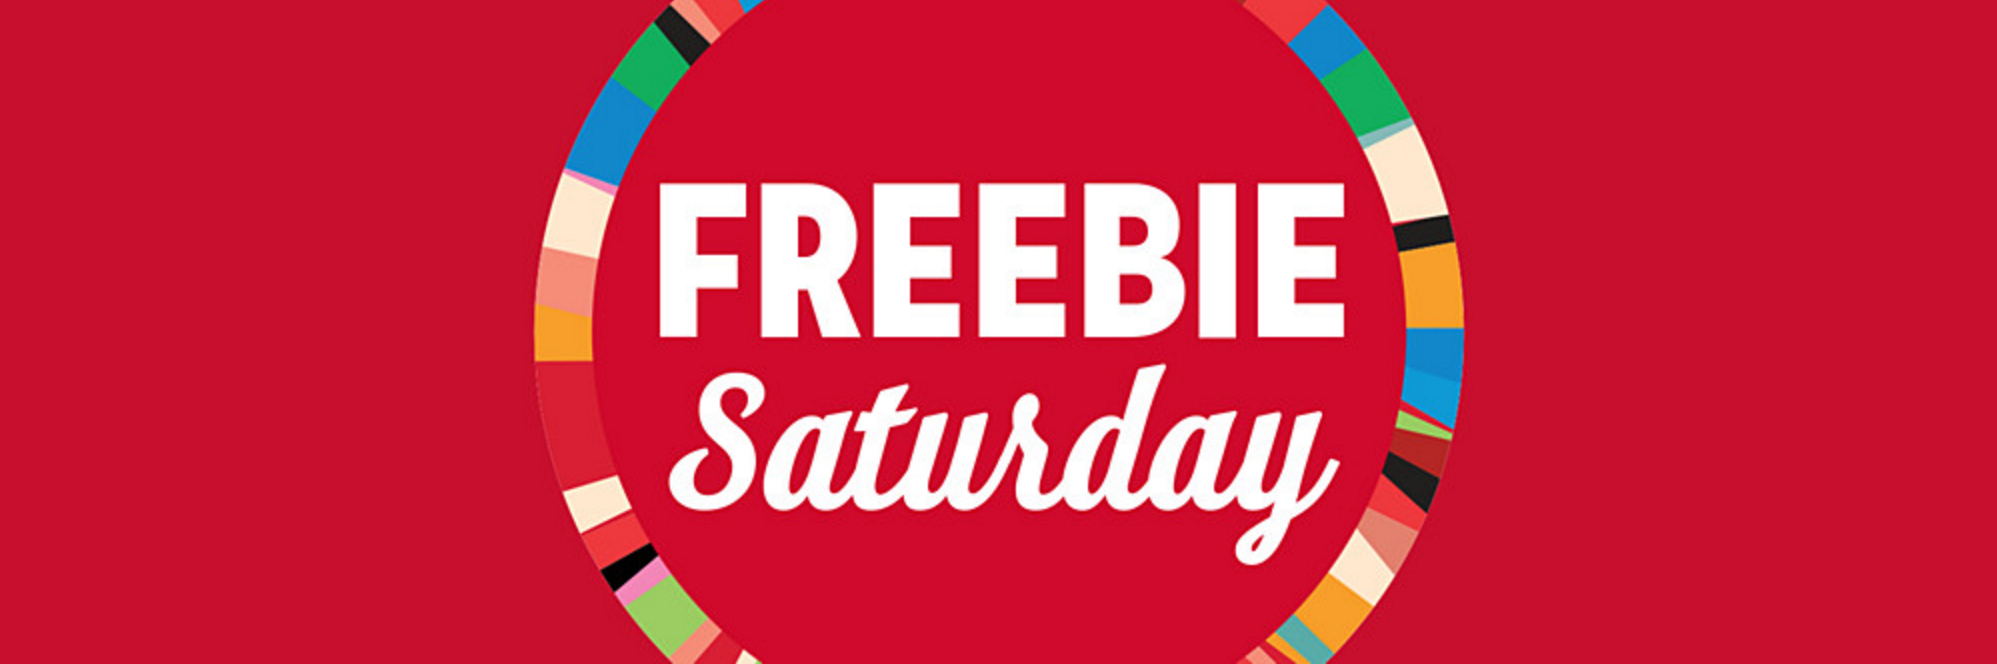 Kmart Freebie Saturday – Hojas para Colorear